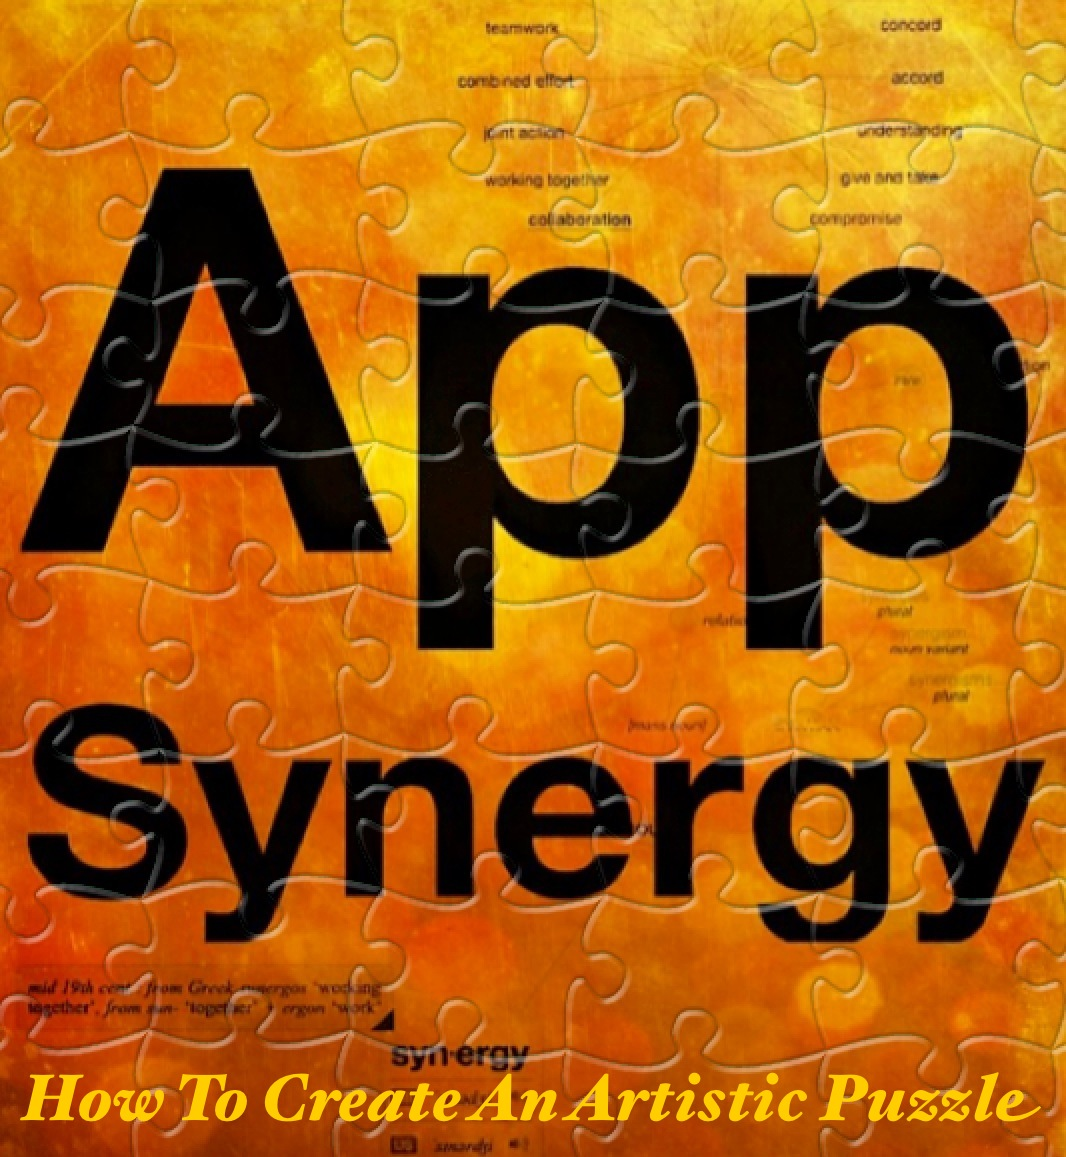 App Synergy: How To Create An Artistic Puzzle